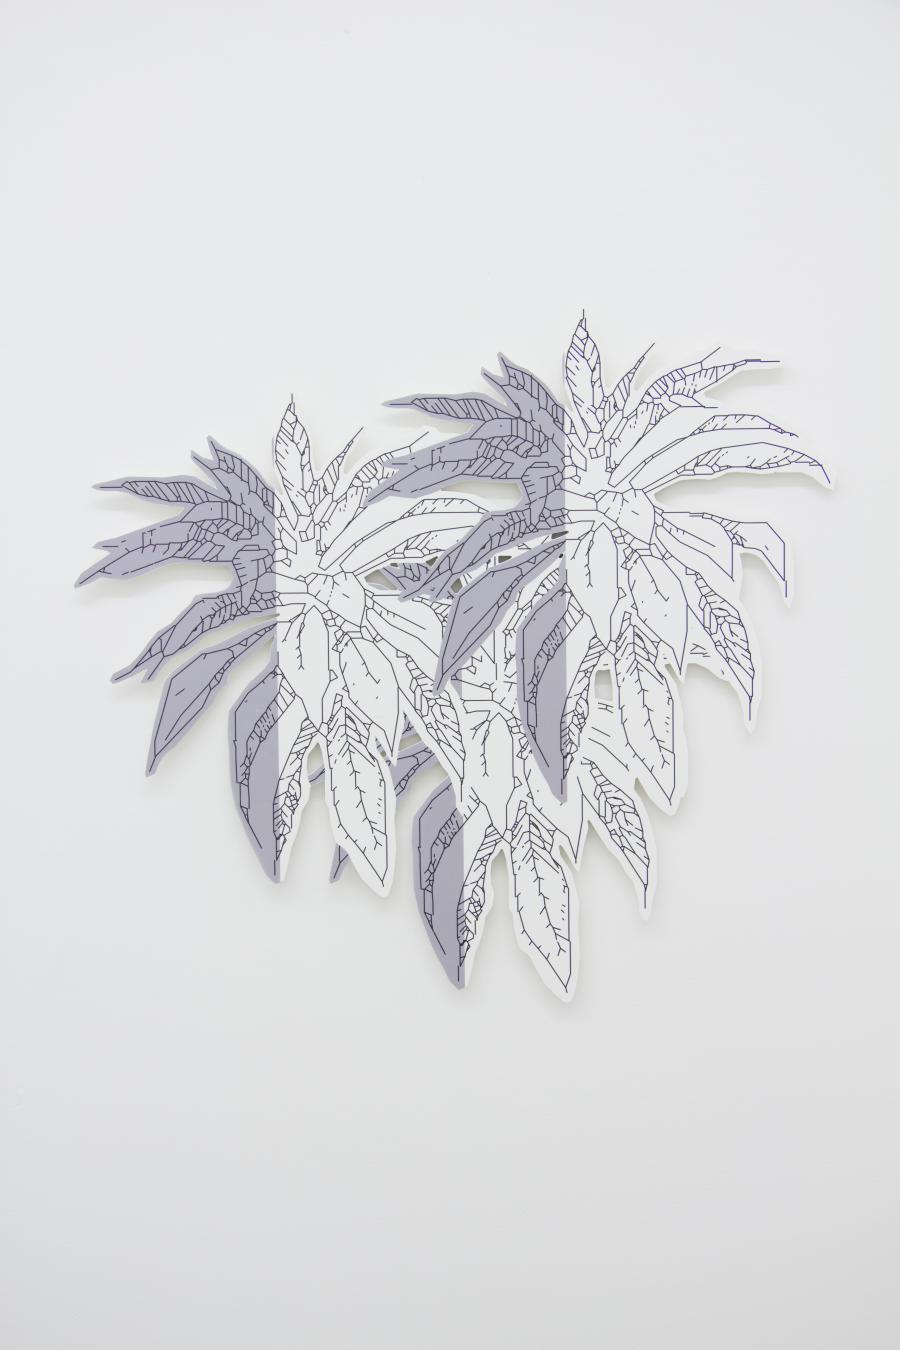 Richard Nikl, 3 Plants, UV-print on PVC, 86 x 79 cm, 2015